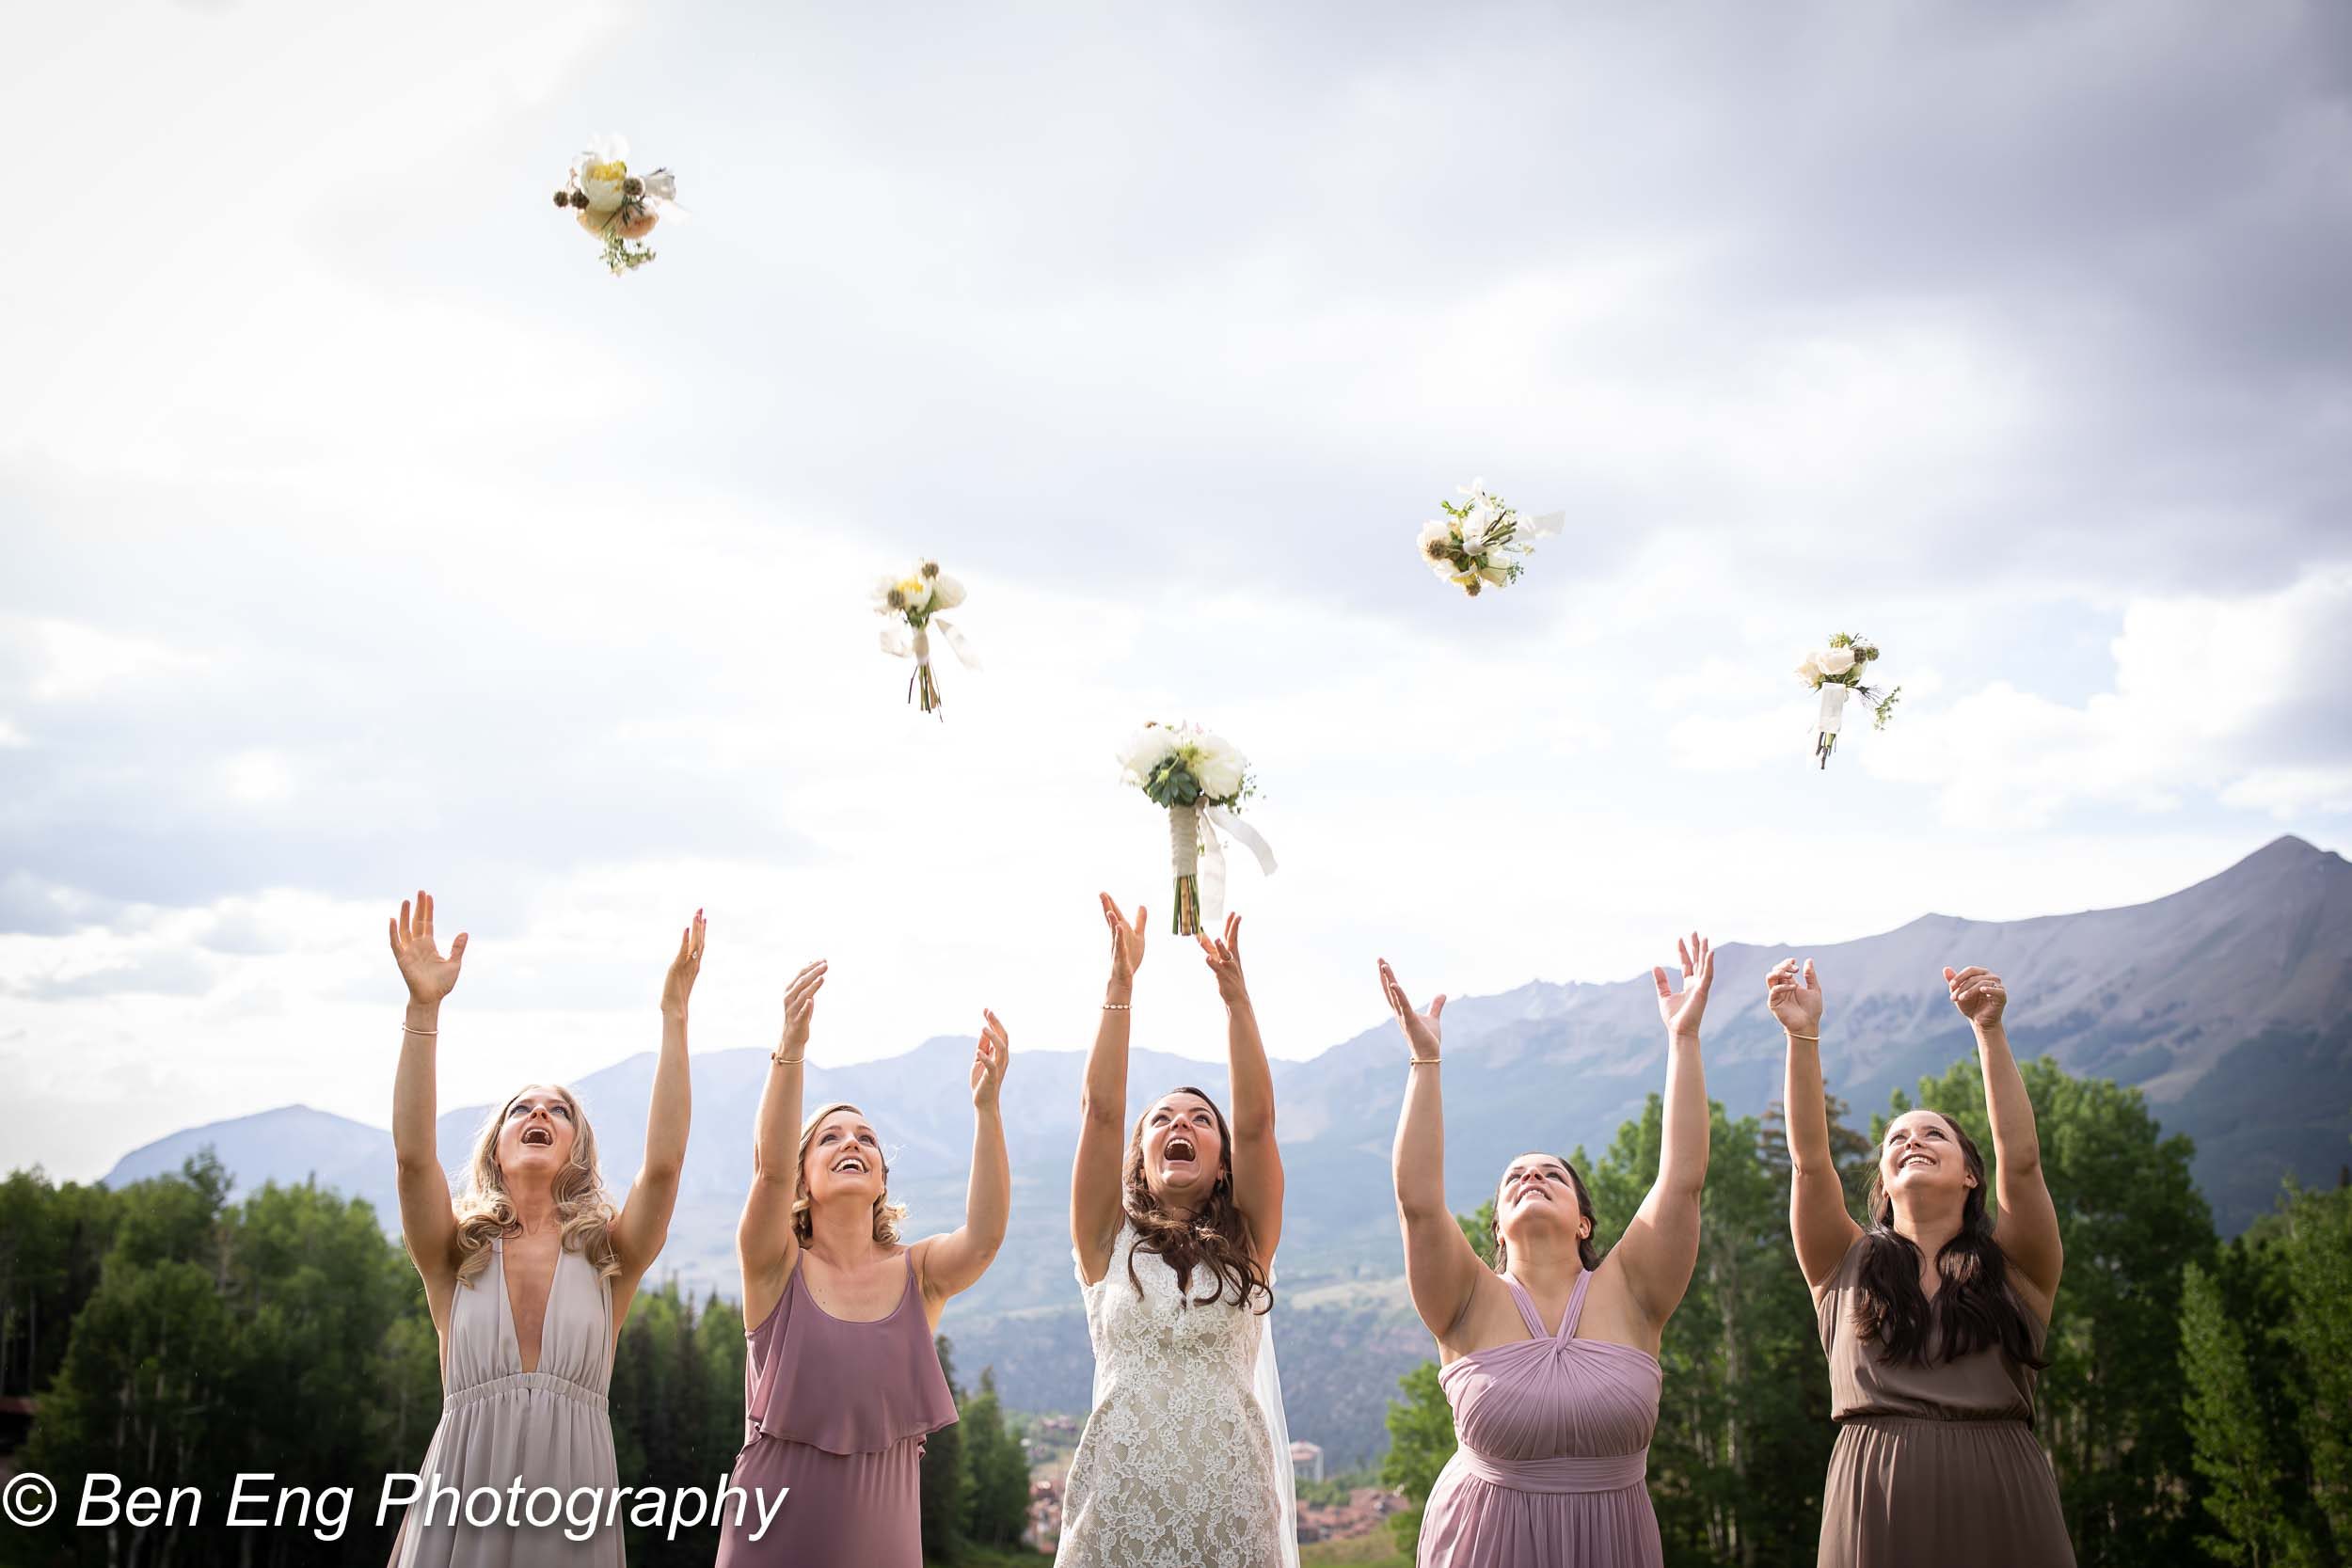 The bridesmaids tossing their bouquets